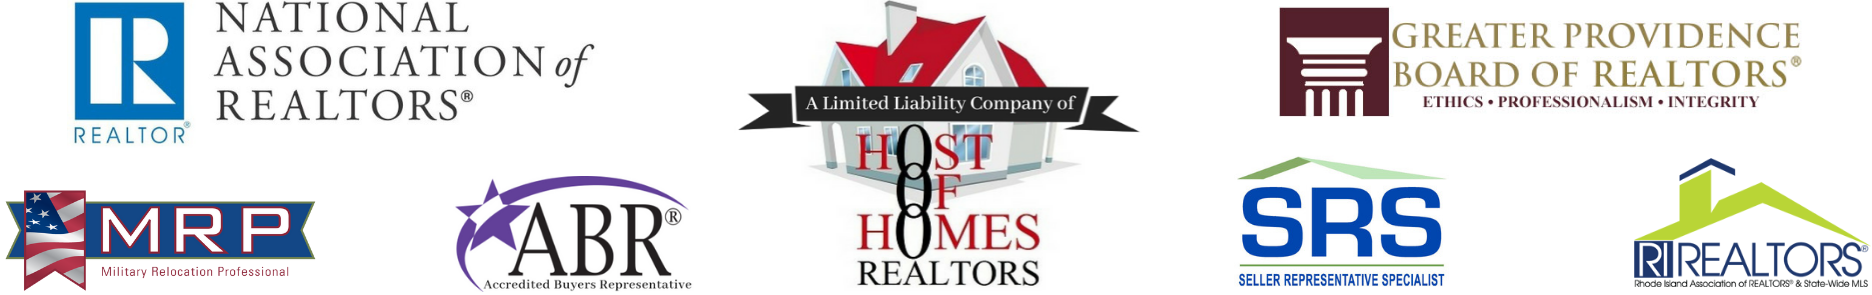 RIHOH, llc AKA Rhode Isaland Host of Homes is a Limited Liability Company of Host of Homes Realtors